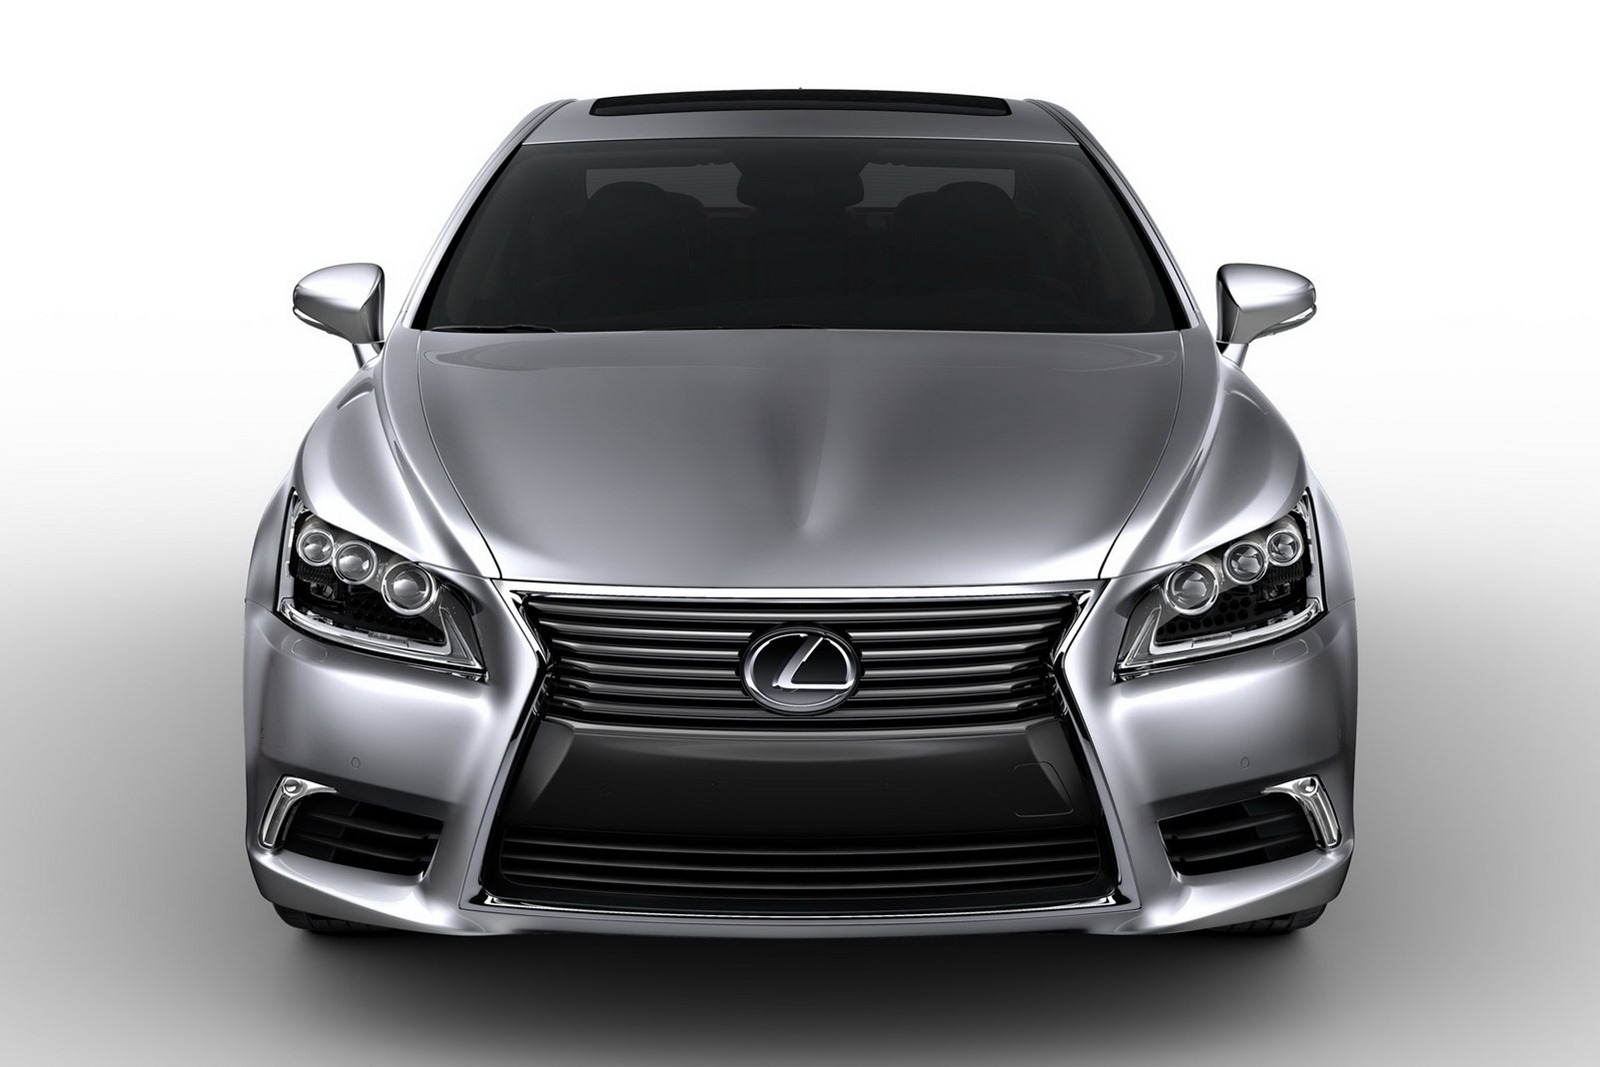 Lexus ls 460 l 2014 photo - 4